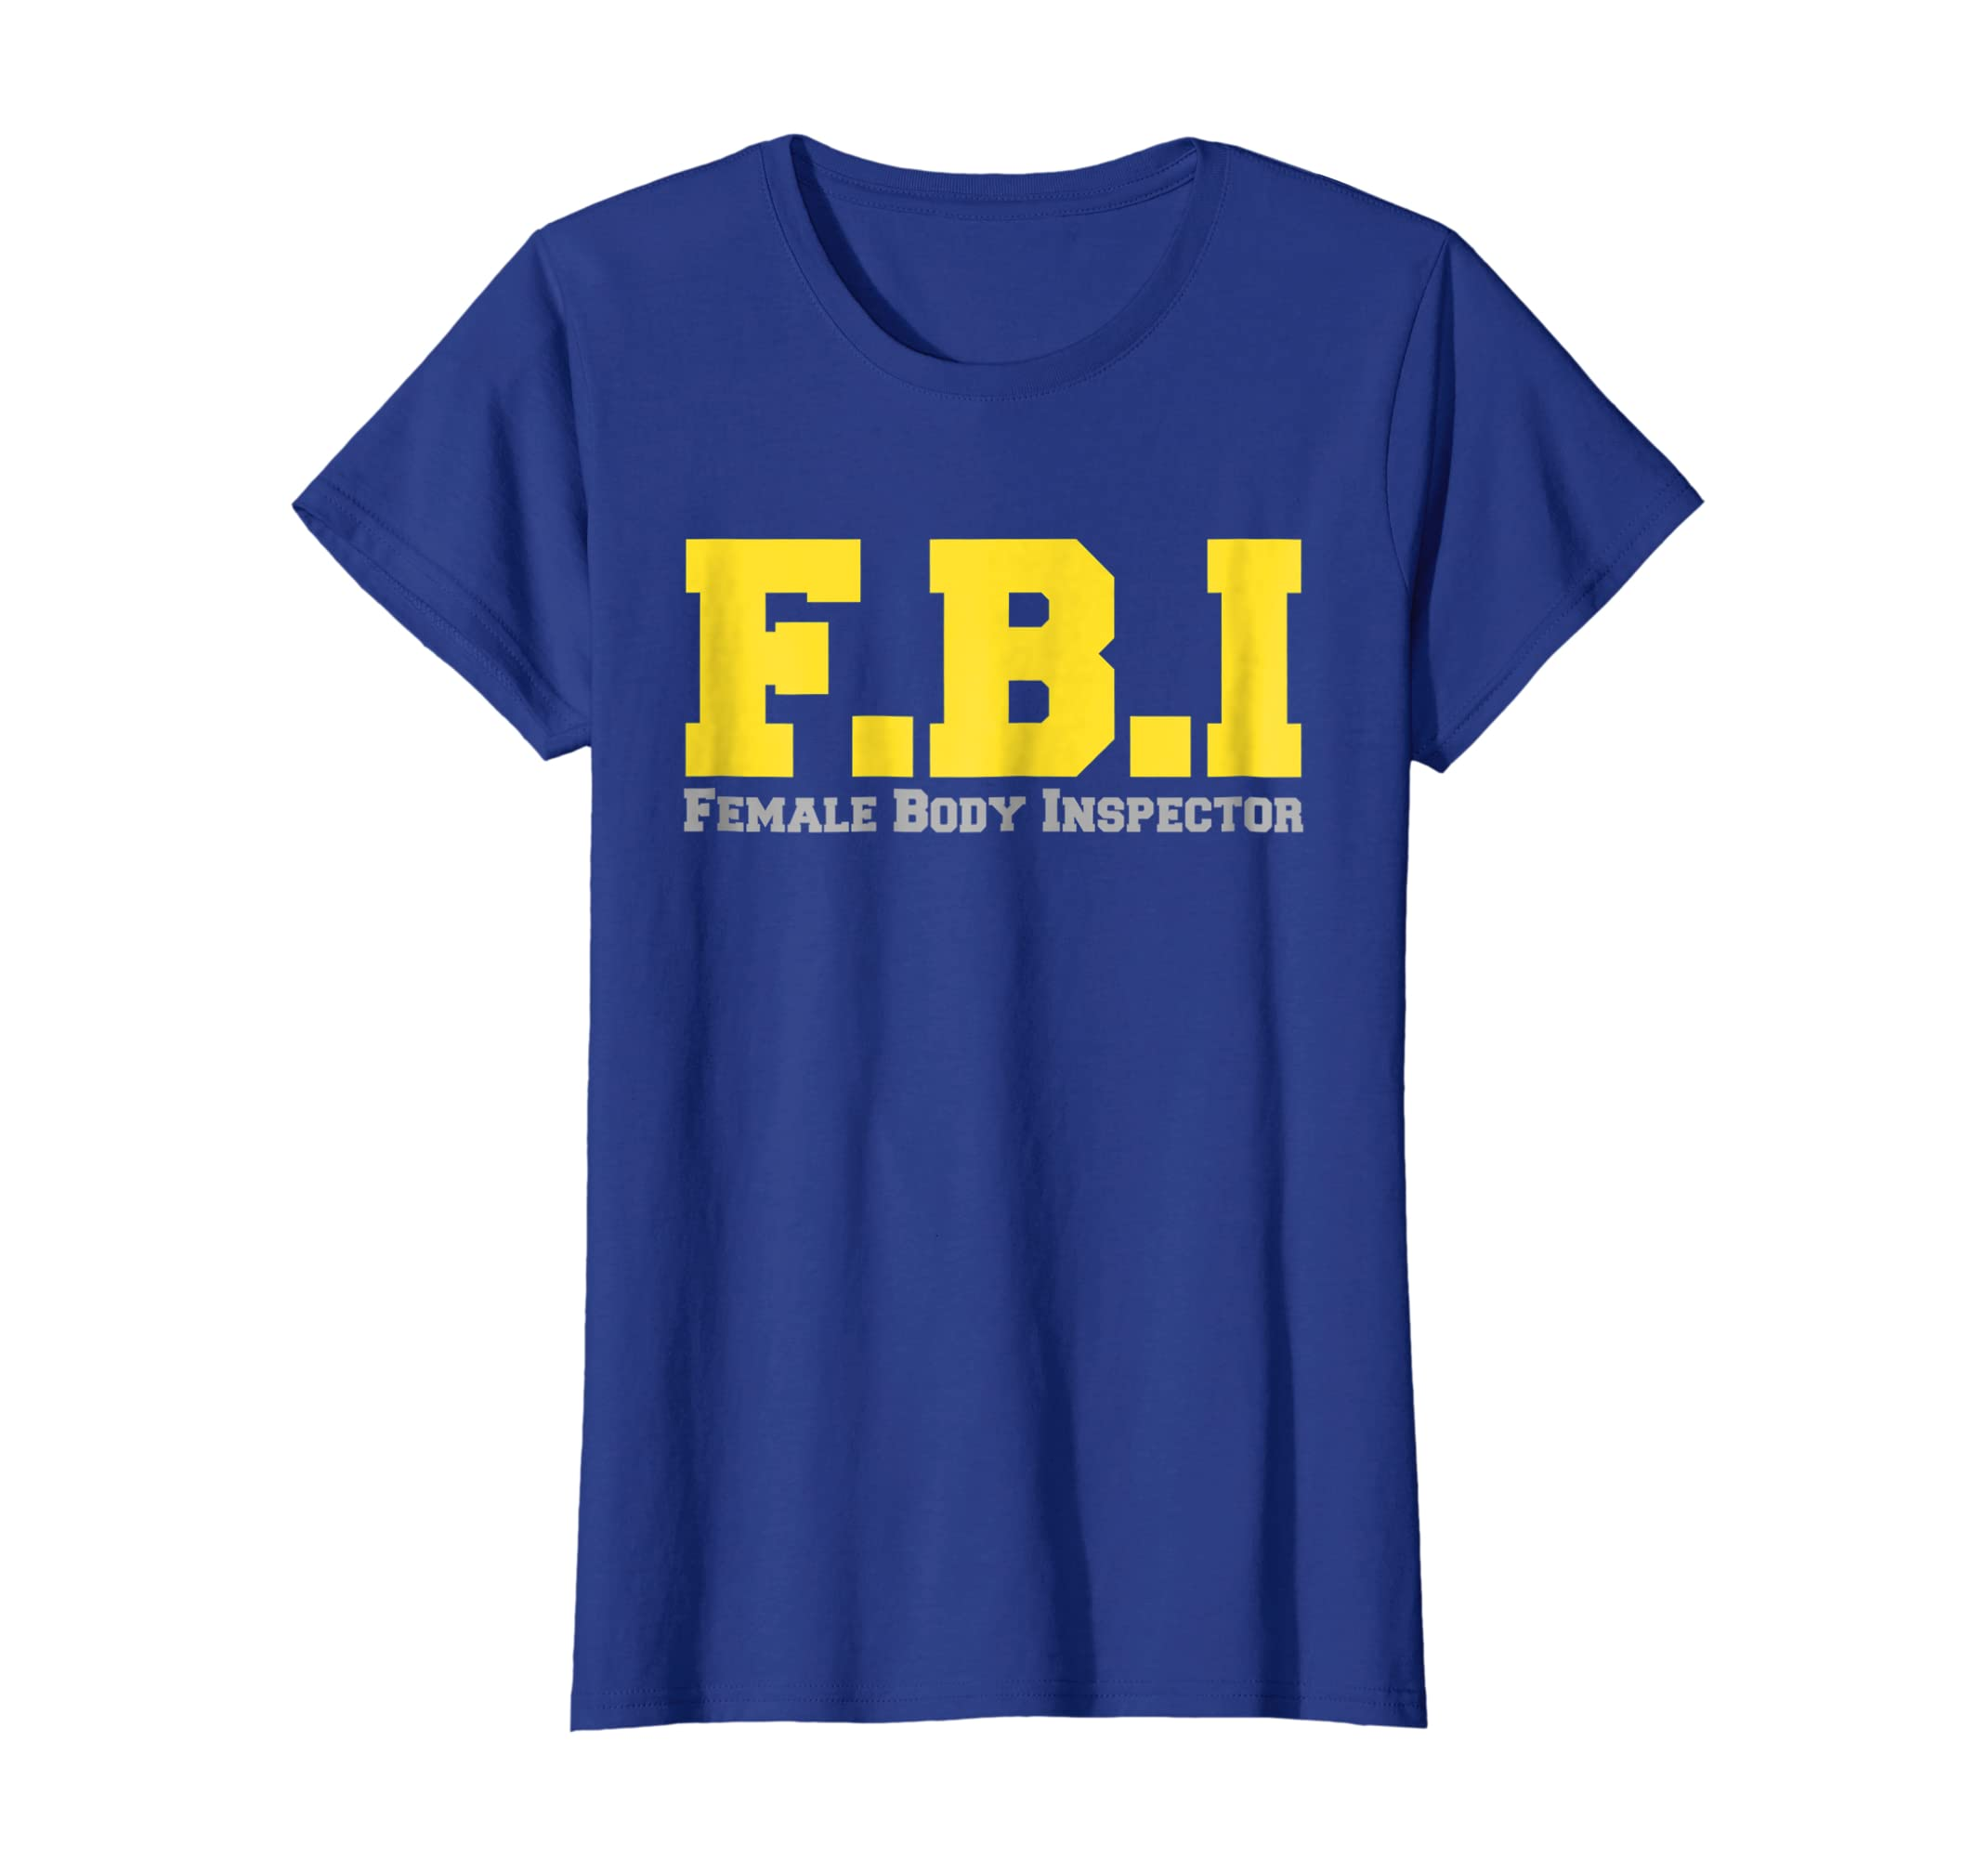 d423aee4 Amazon.com: FBI Female Body Inspector T-Shirt: Clothing